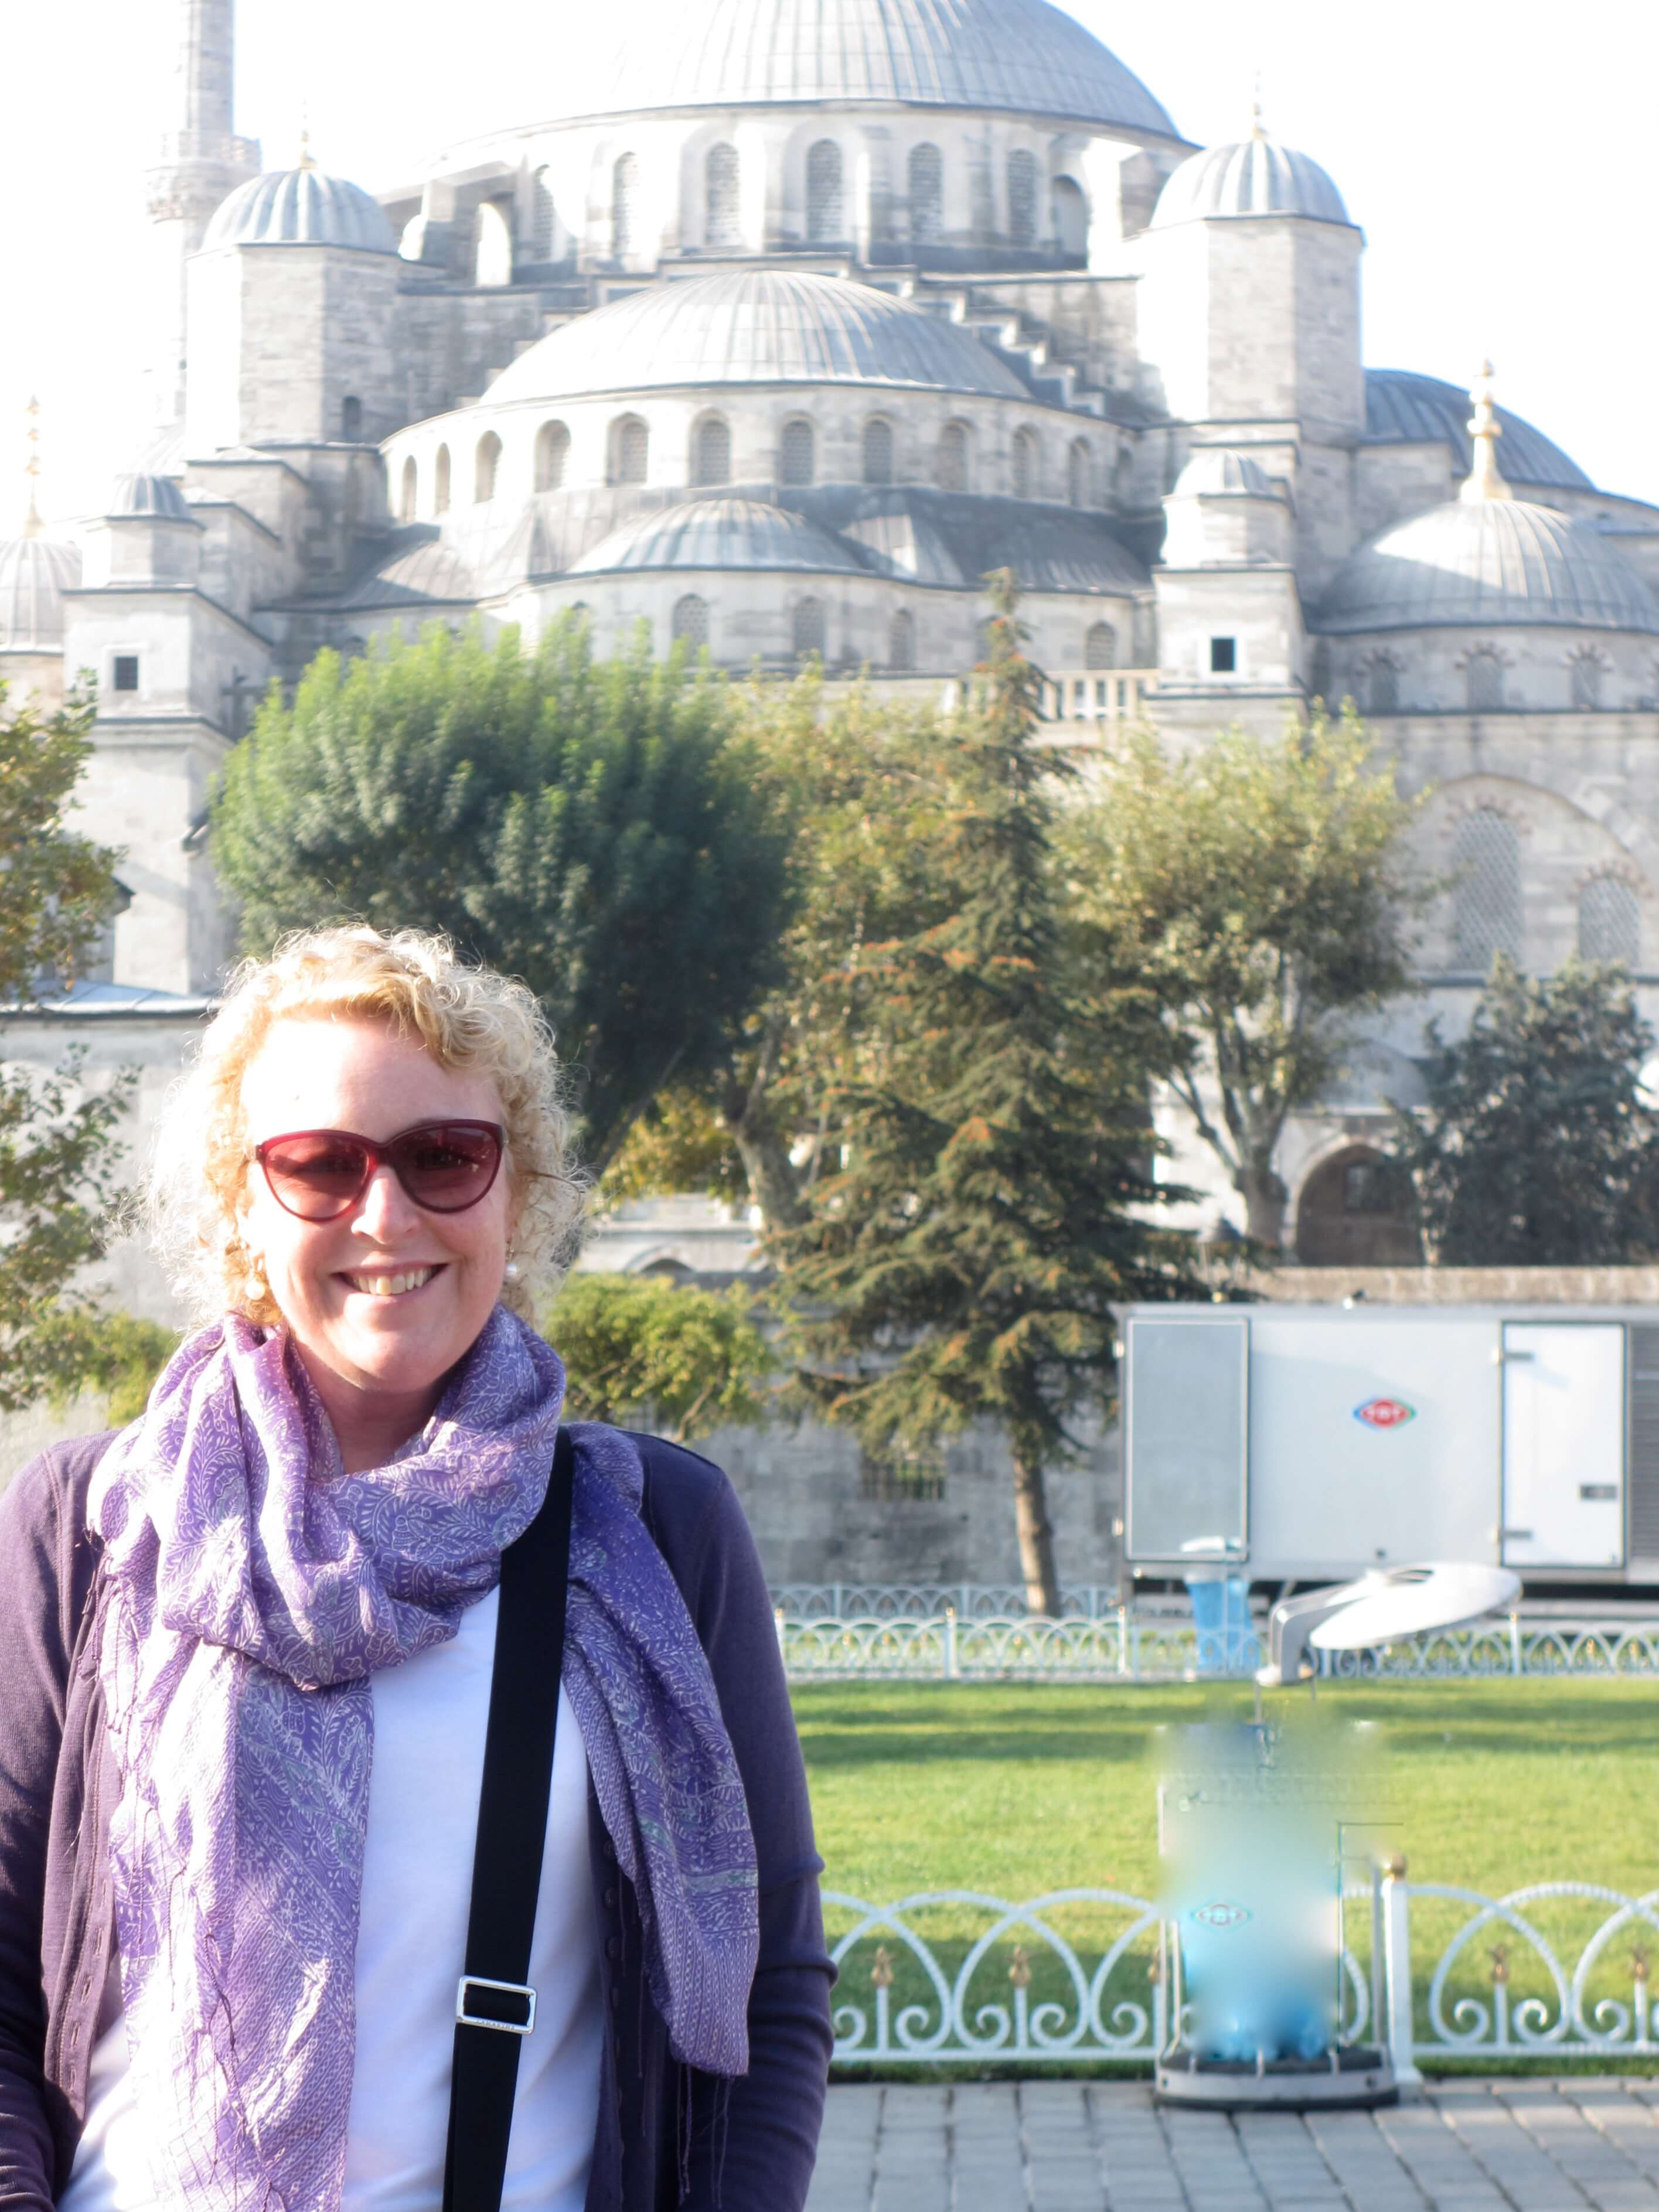 Jo Karnaghan wearing a purple cardigan and purple scarf standing in front of the Blue Mosque in Istanbul